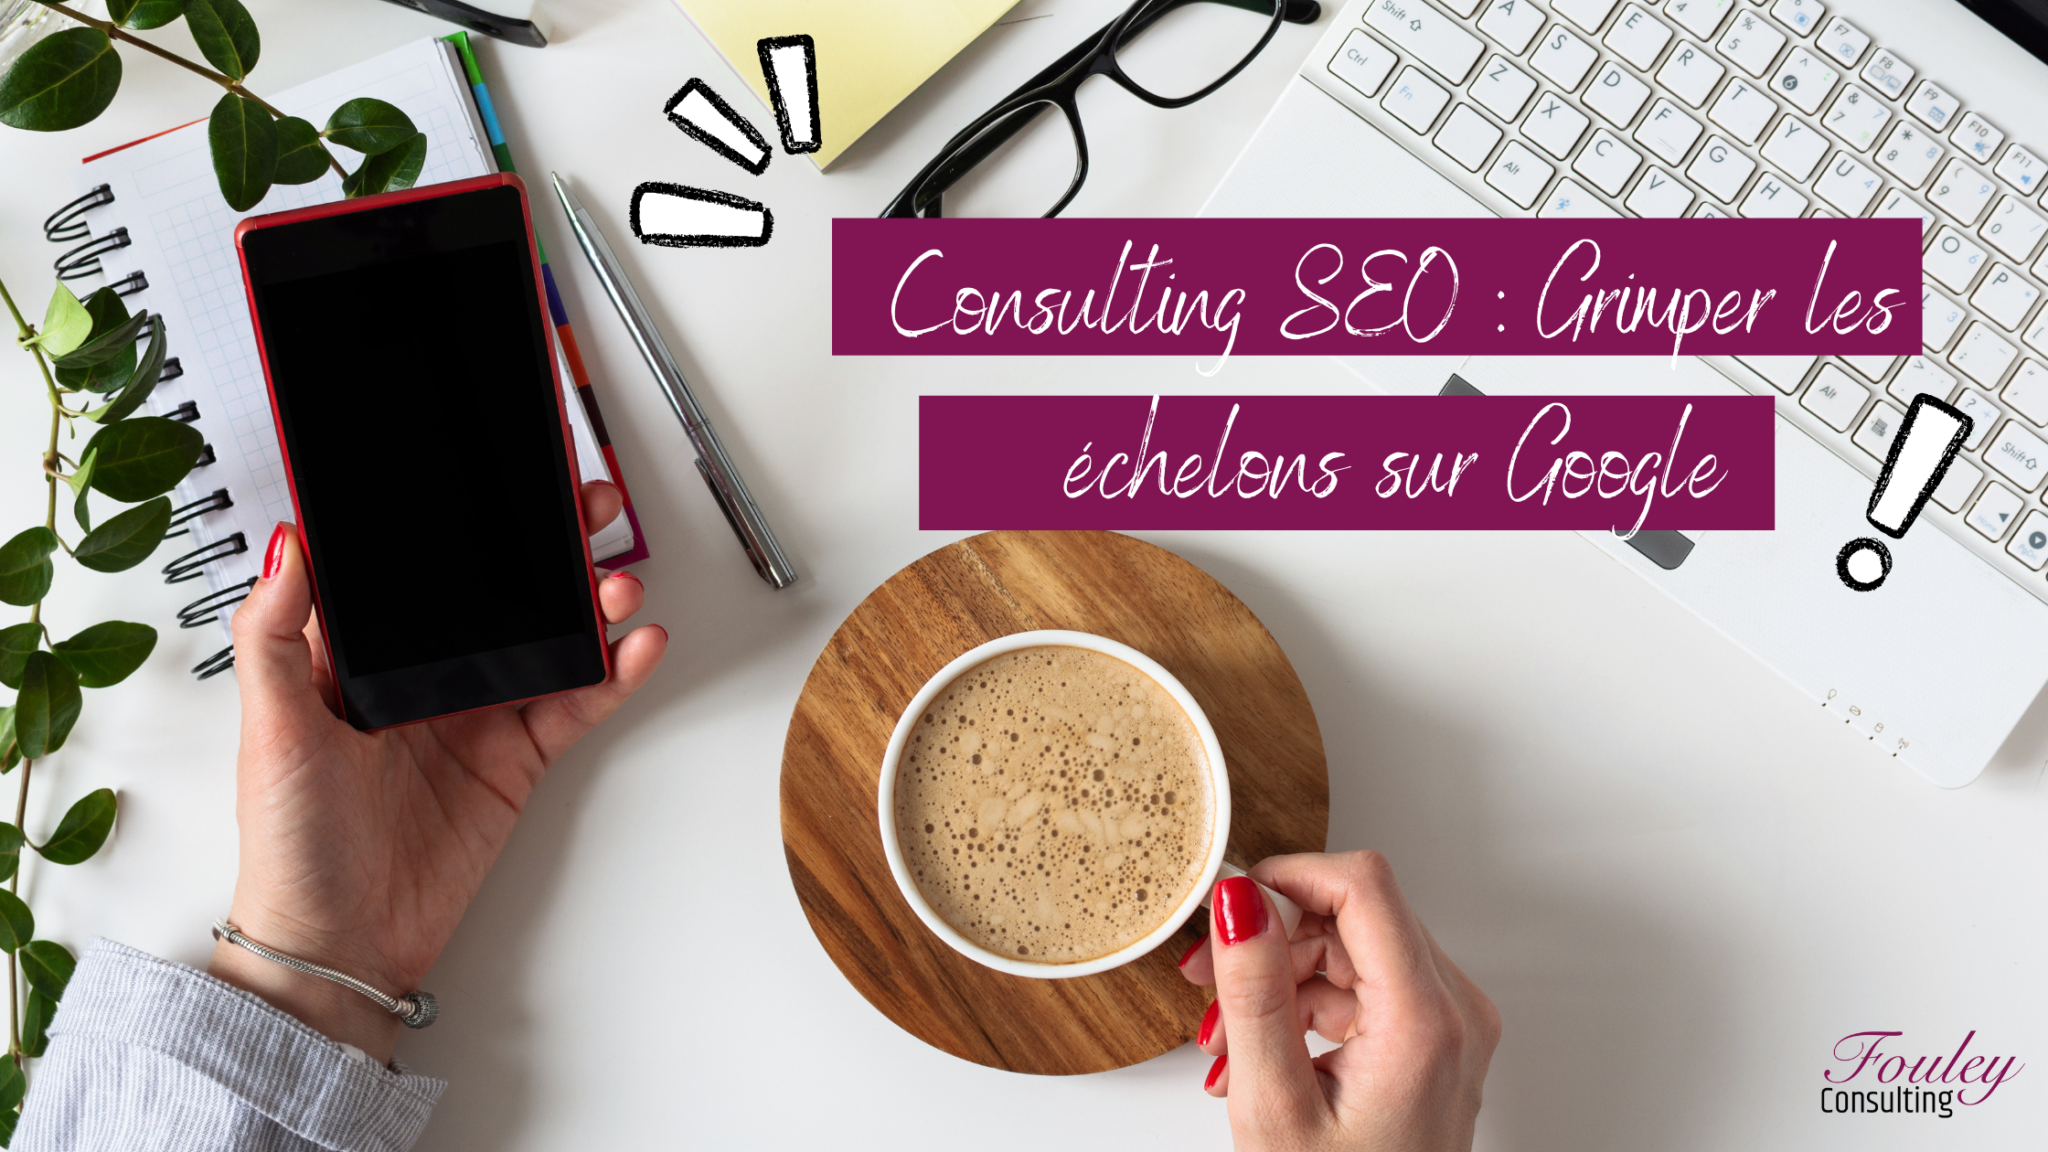 Consulting seo